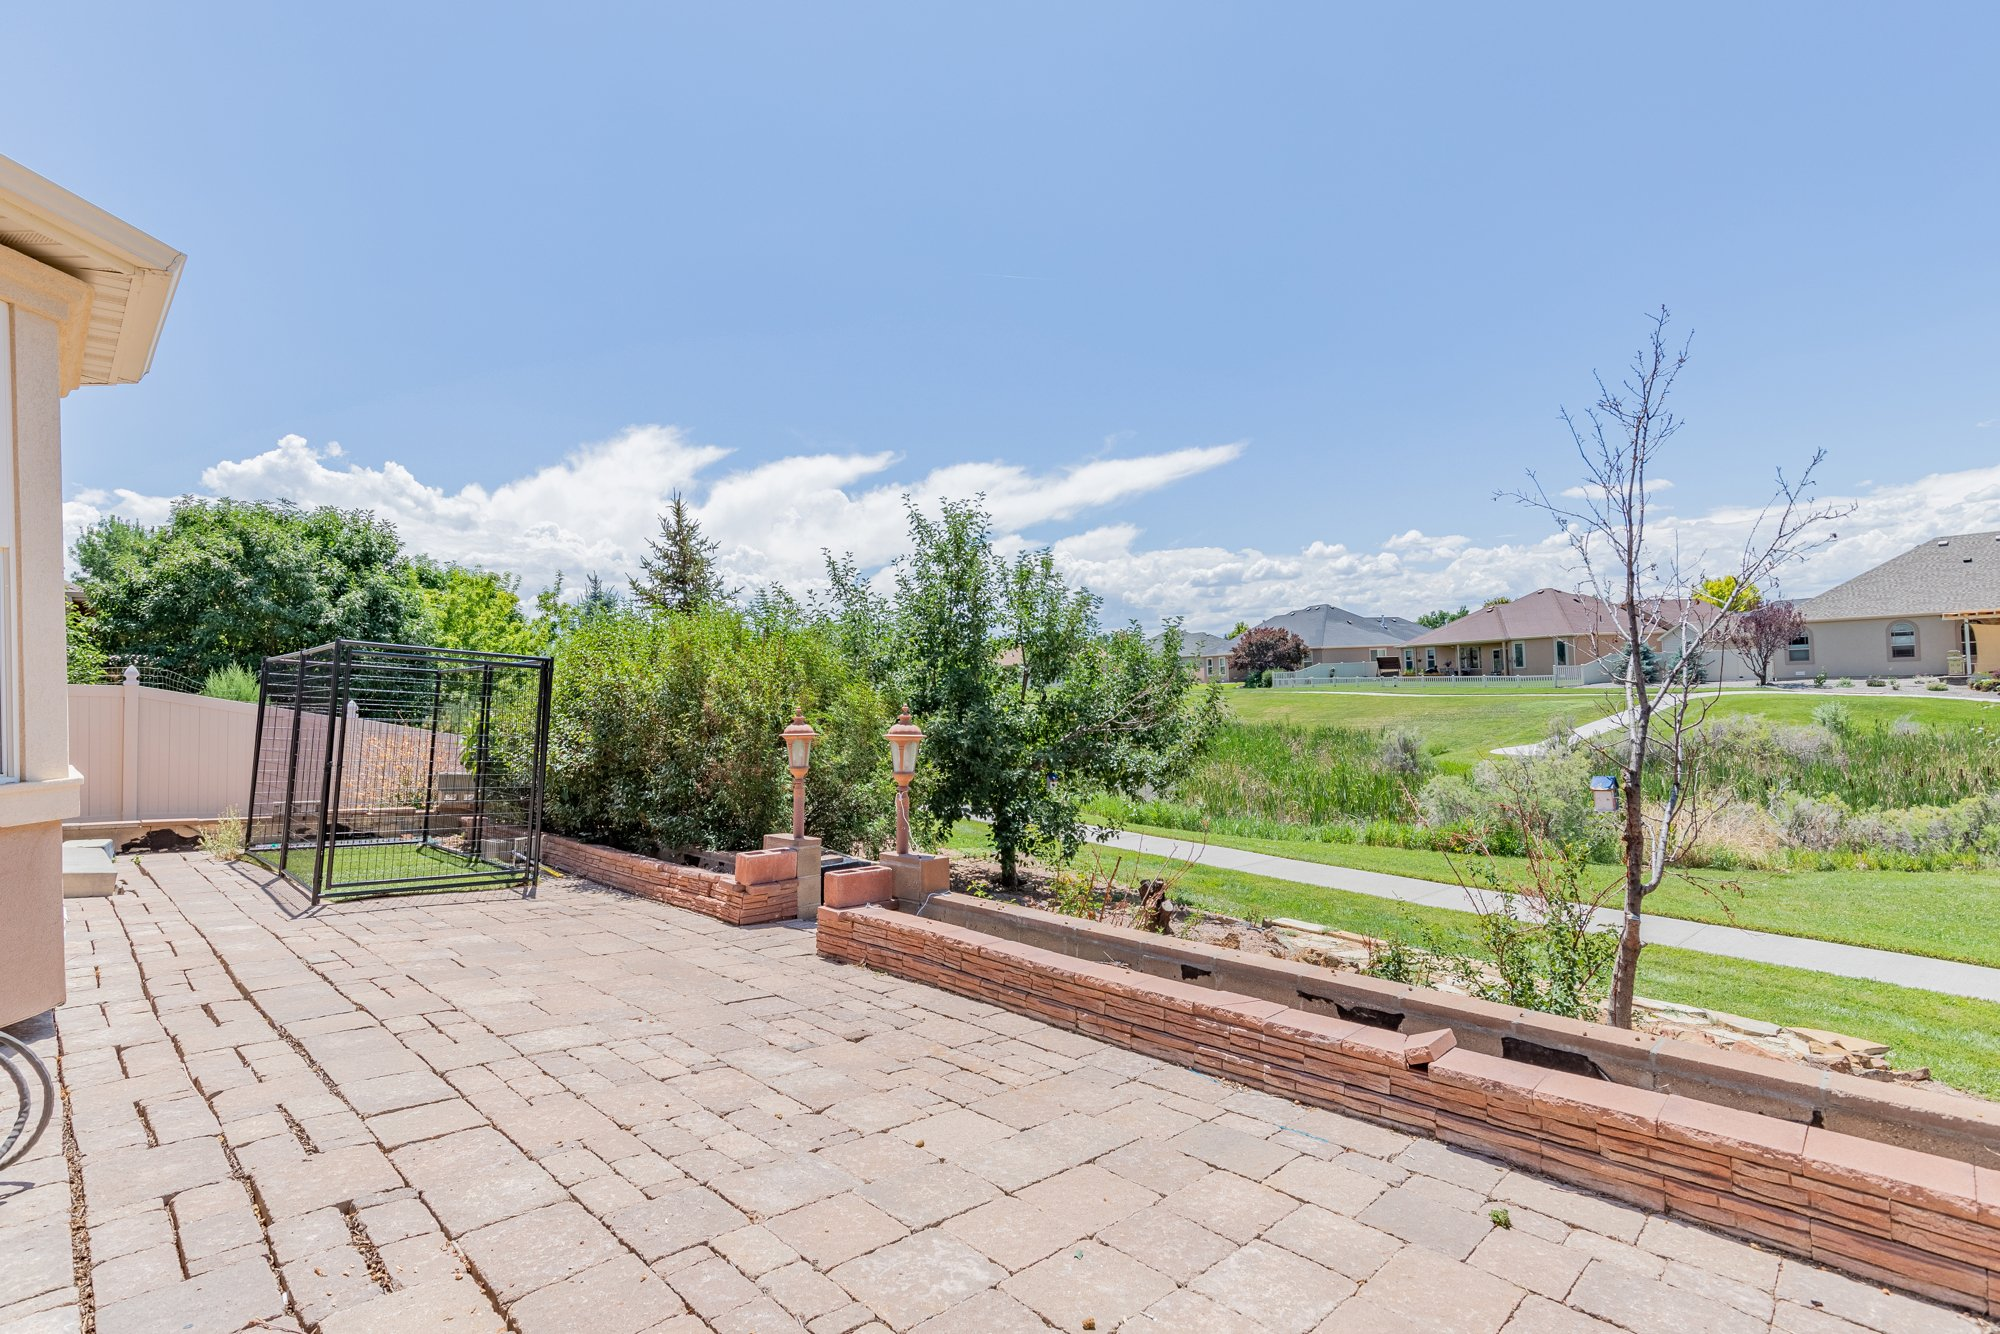 Back Patio with Pond Views - 2924 Lost Creek Rd S. Montrose, CO 81401 - Atha Team Real Estate Agents